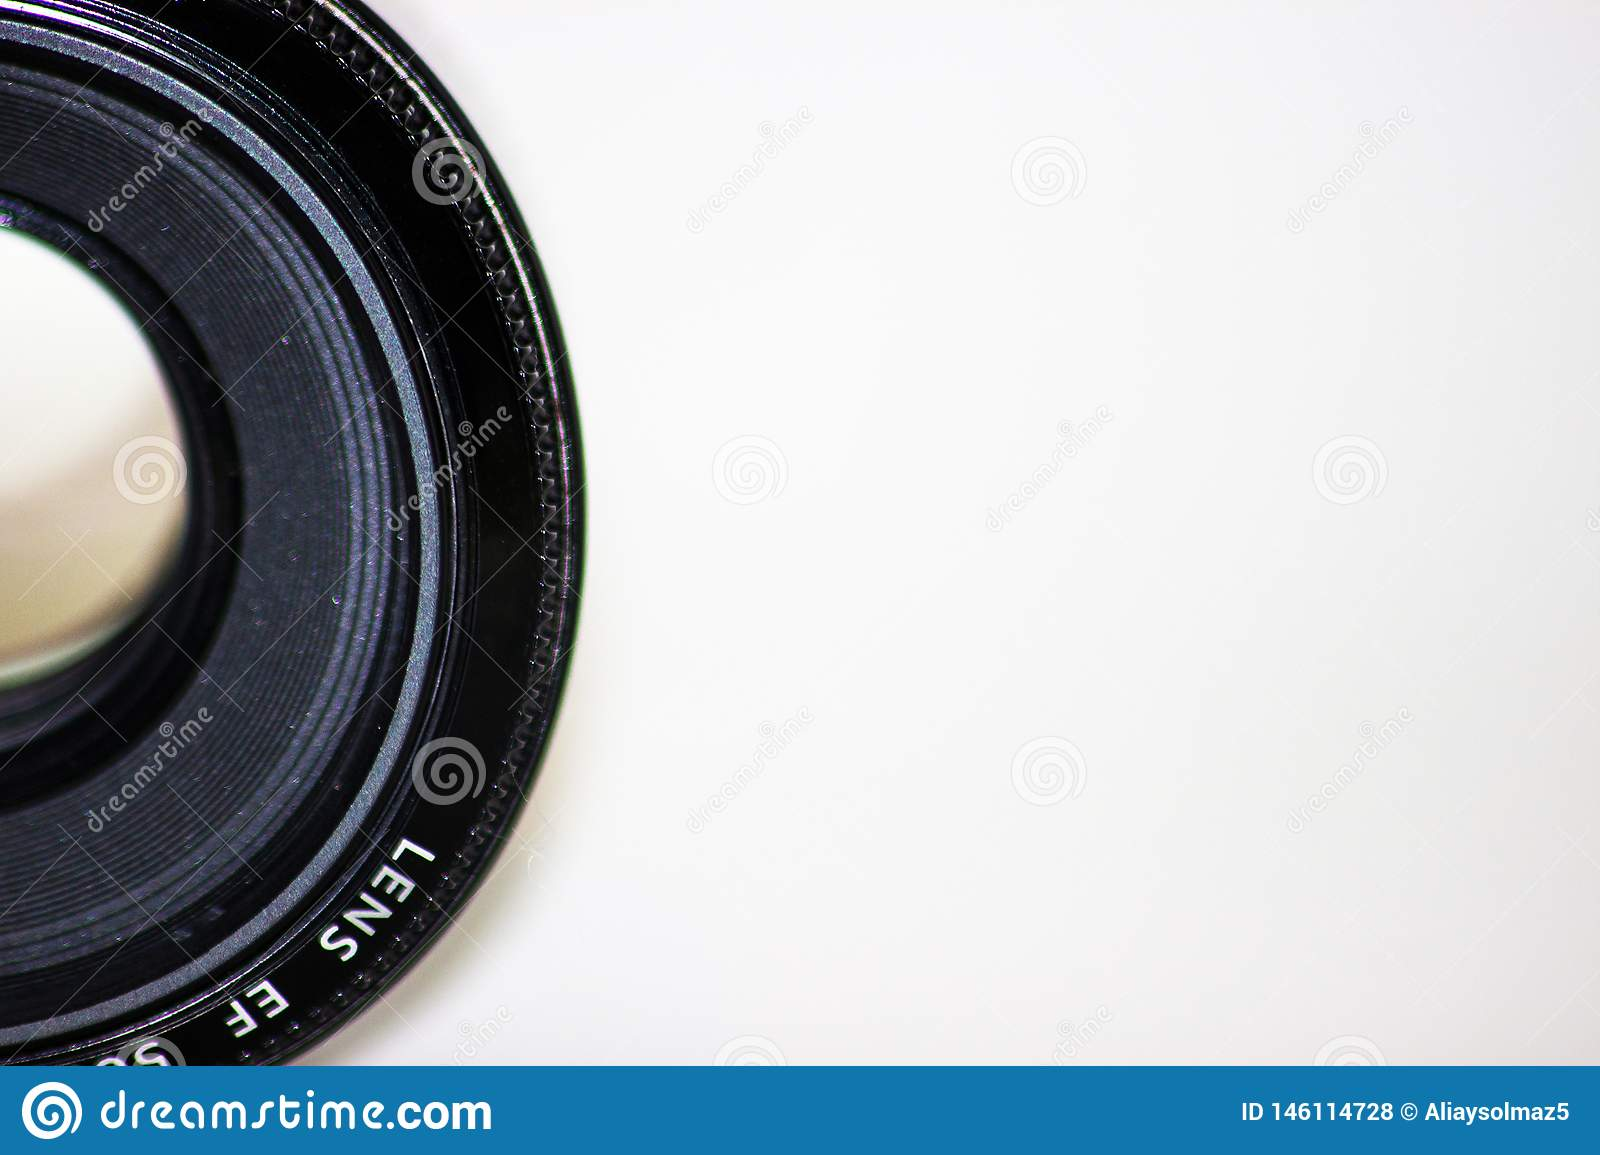 Camera Photo Lens, Old and Used Camera Lens, Isolated Camera Lens, Blank Area